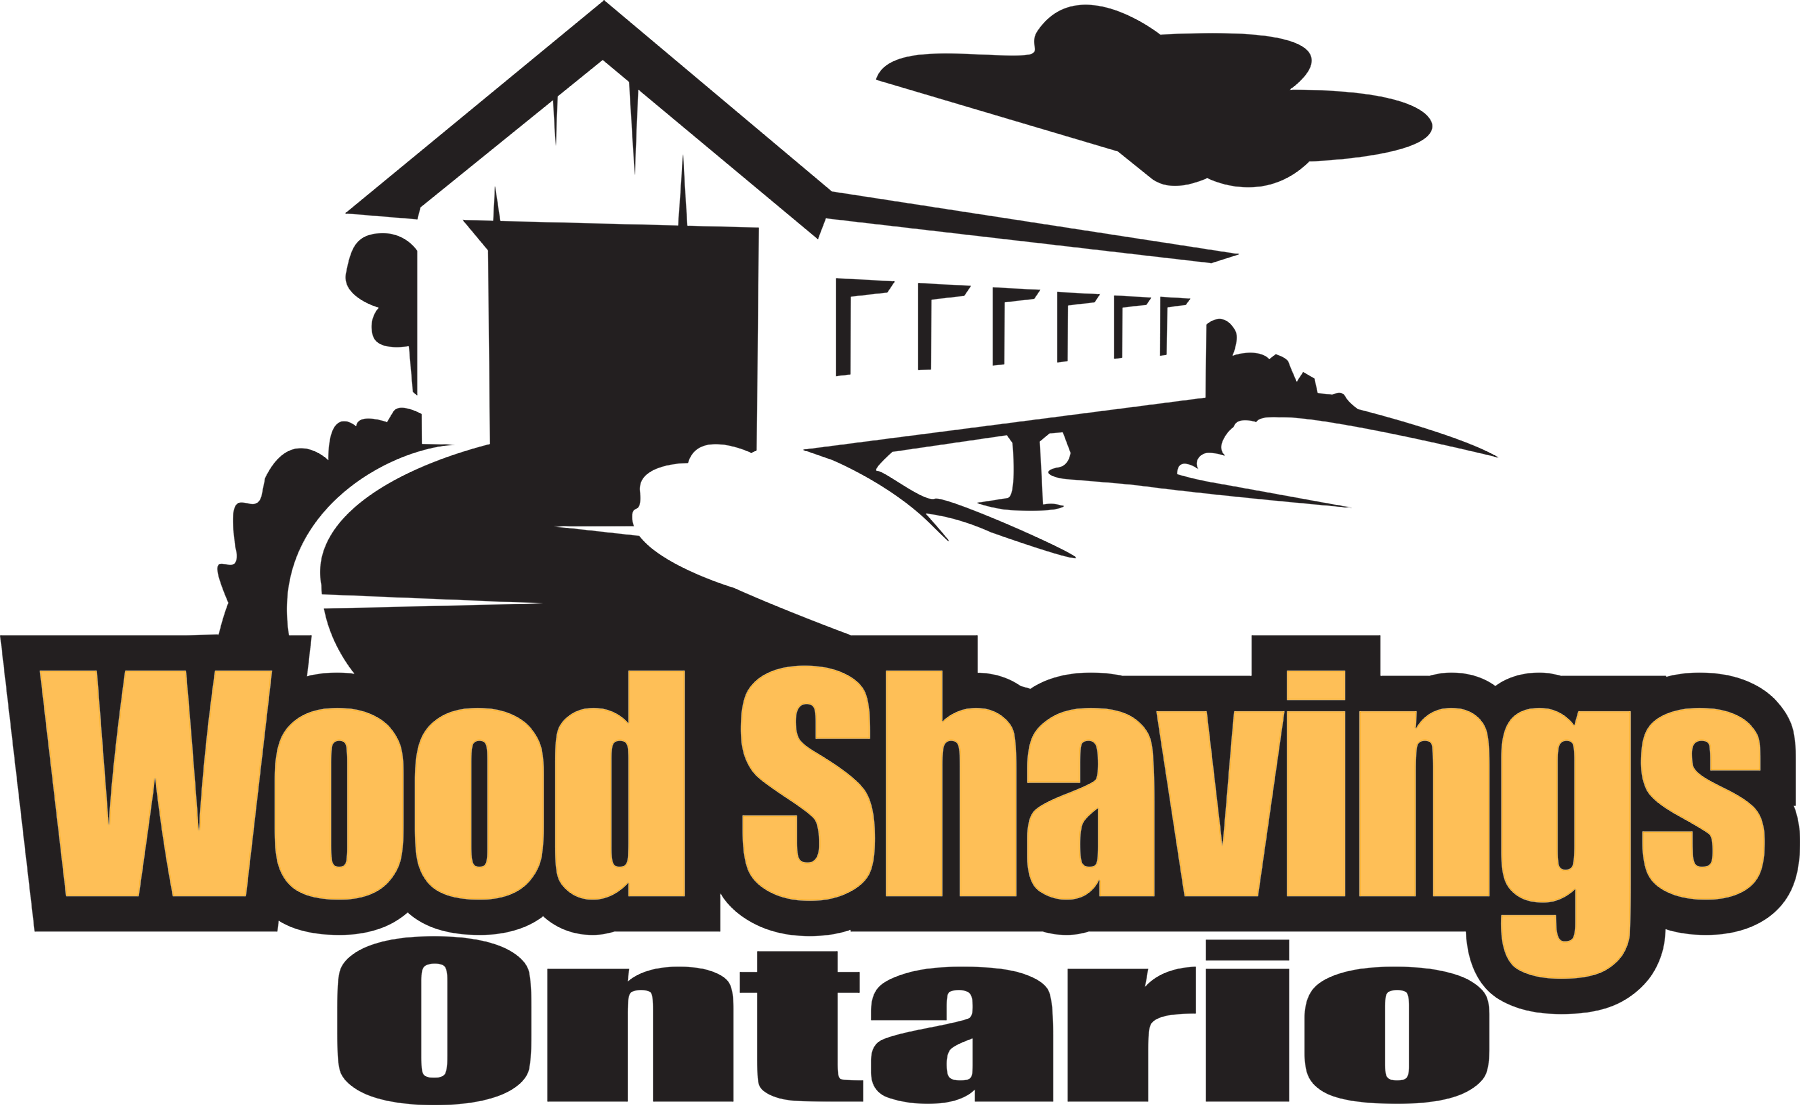 Wood Shavings Ontario